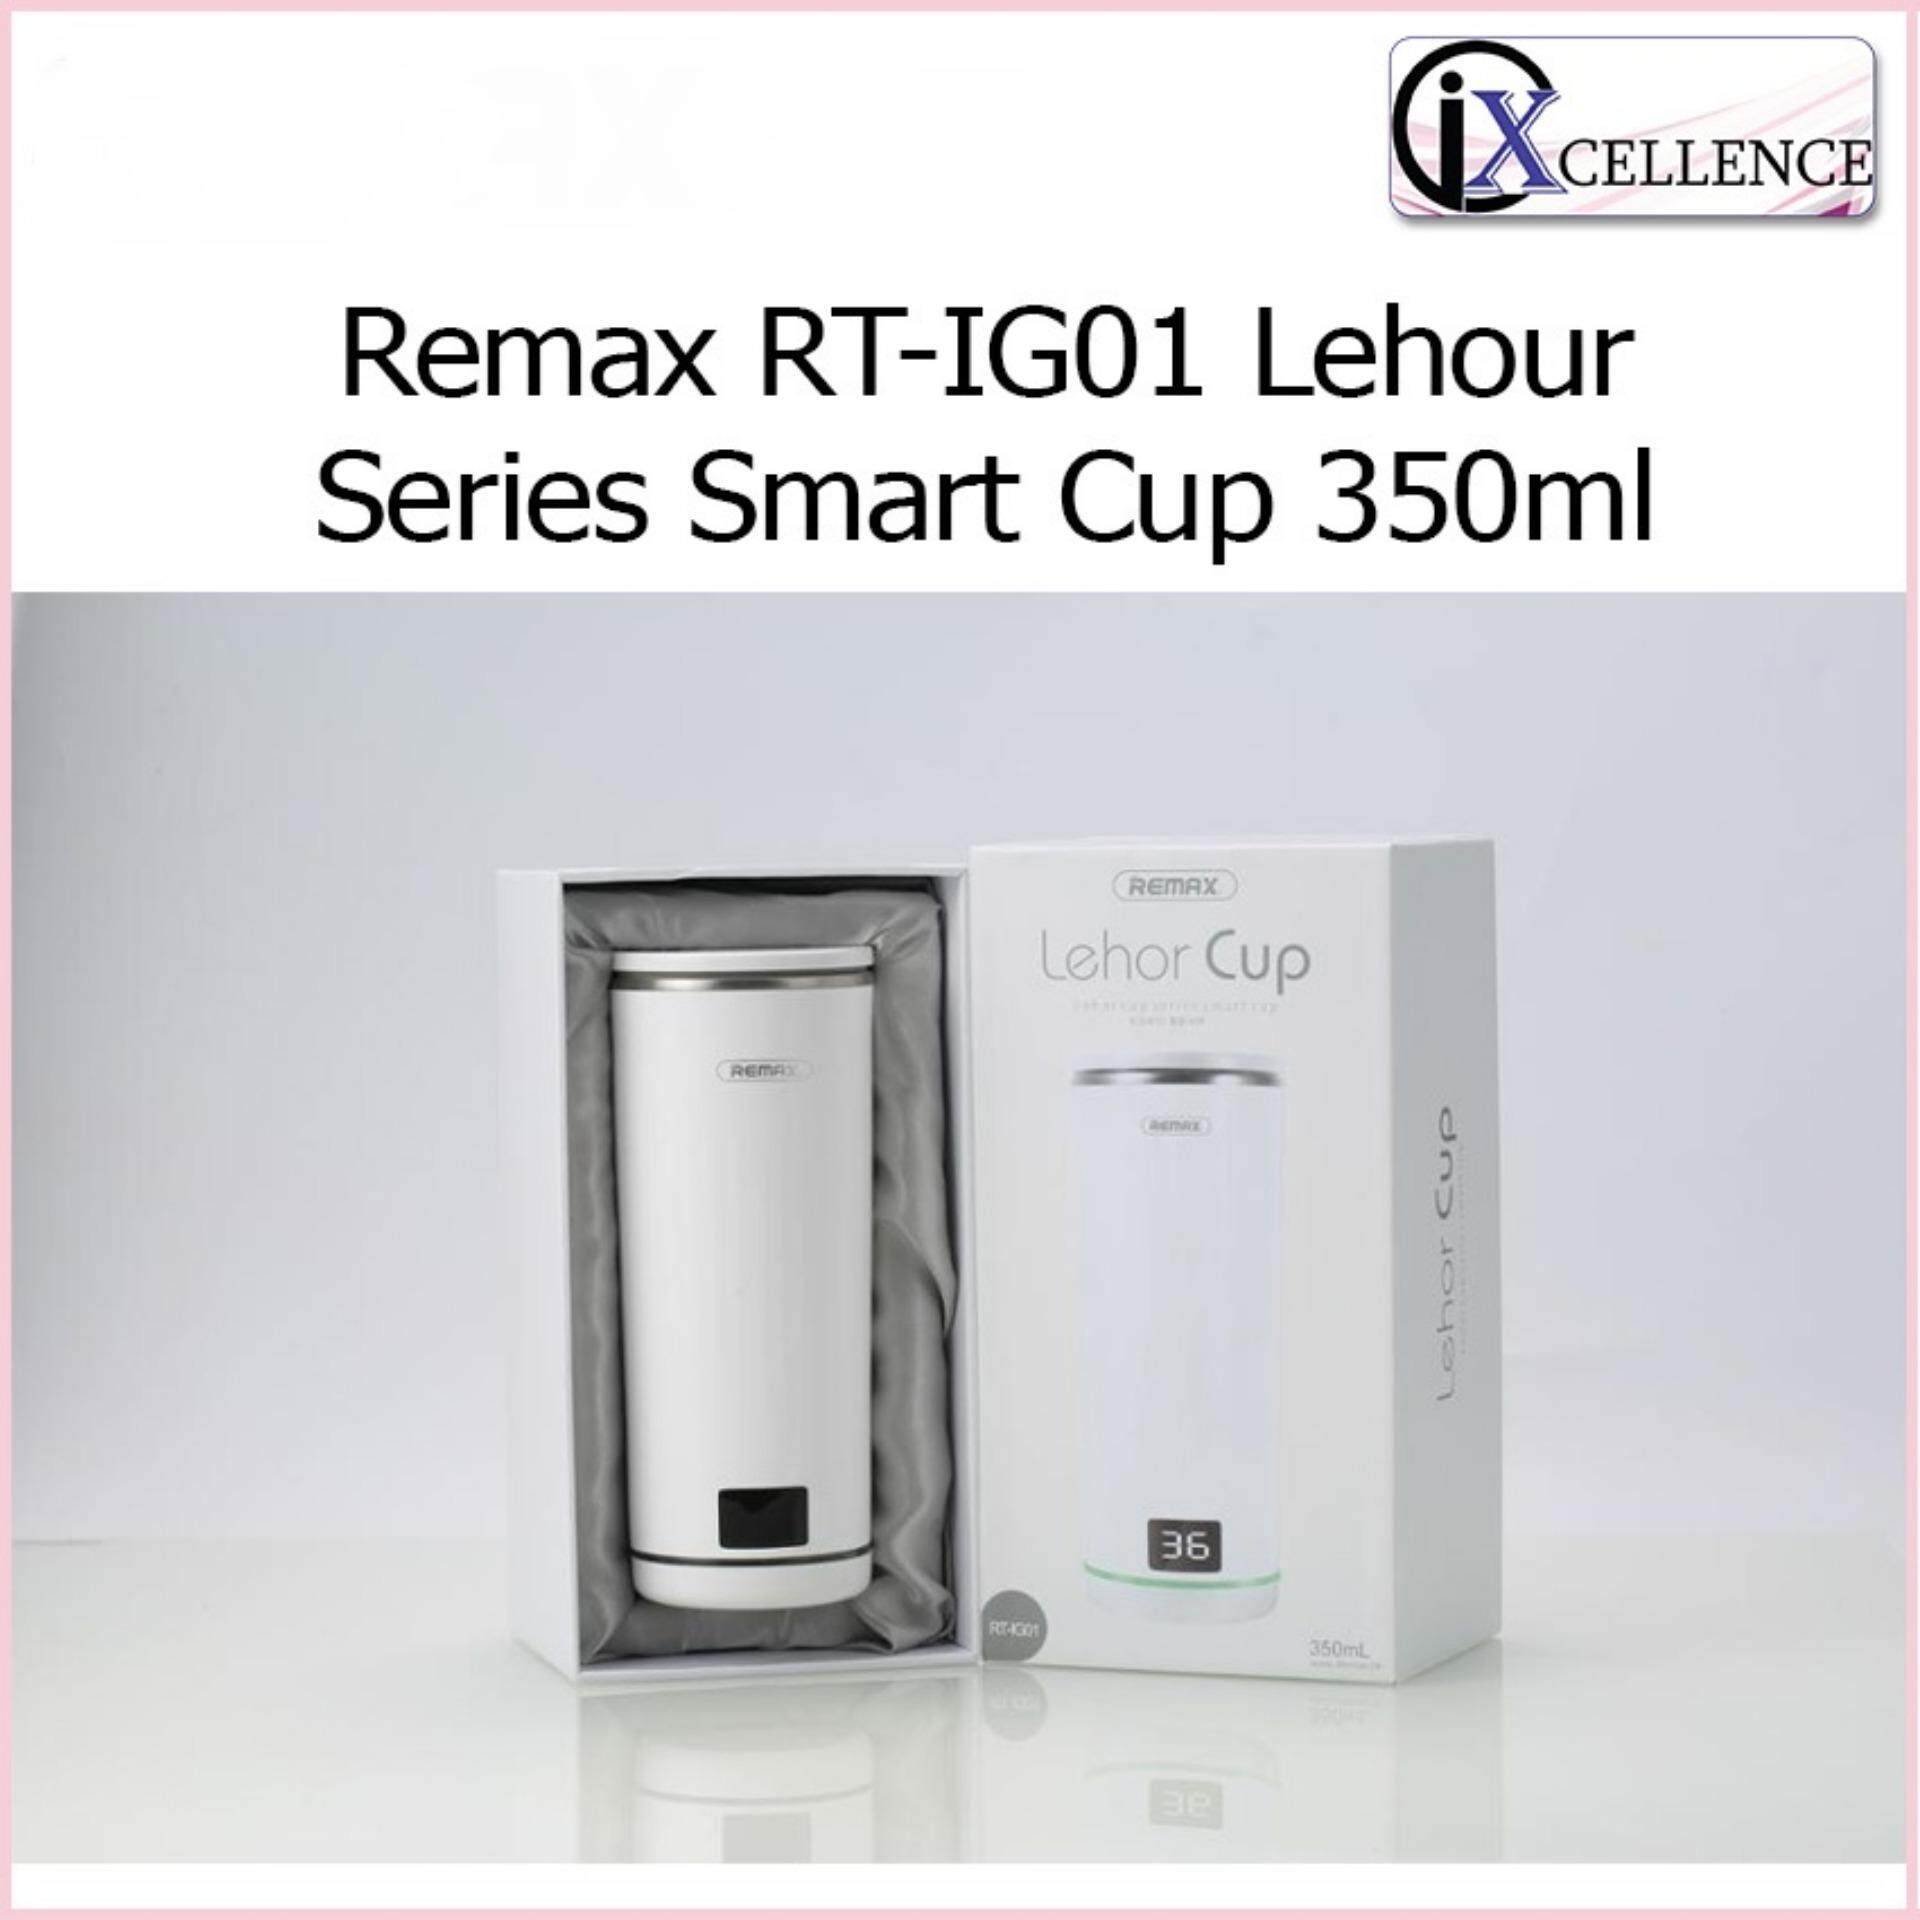 [IX] Remax RT-IG01 Lehour Series Smart Cup 350ml